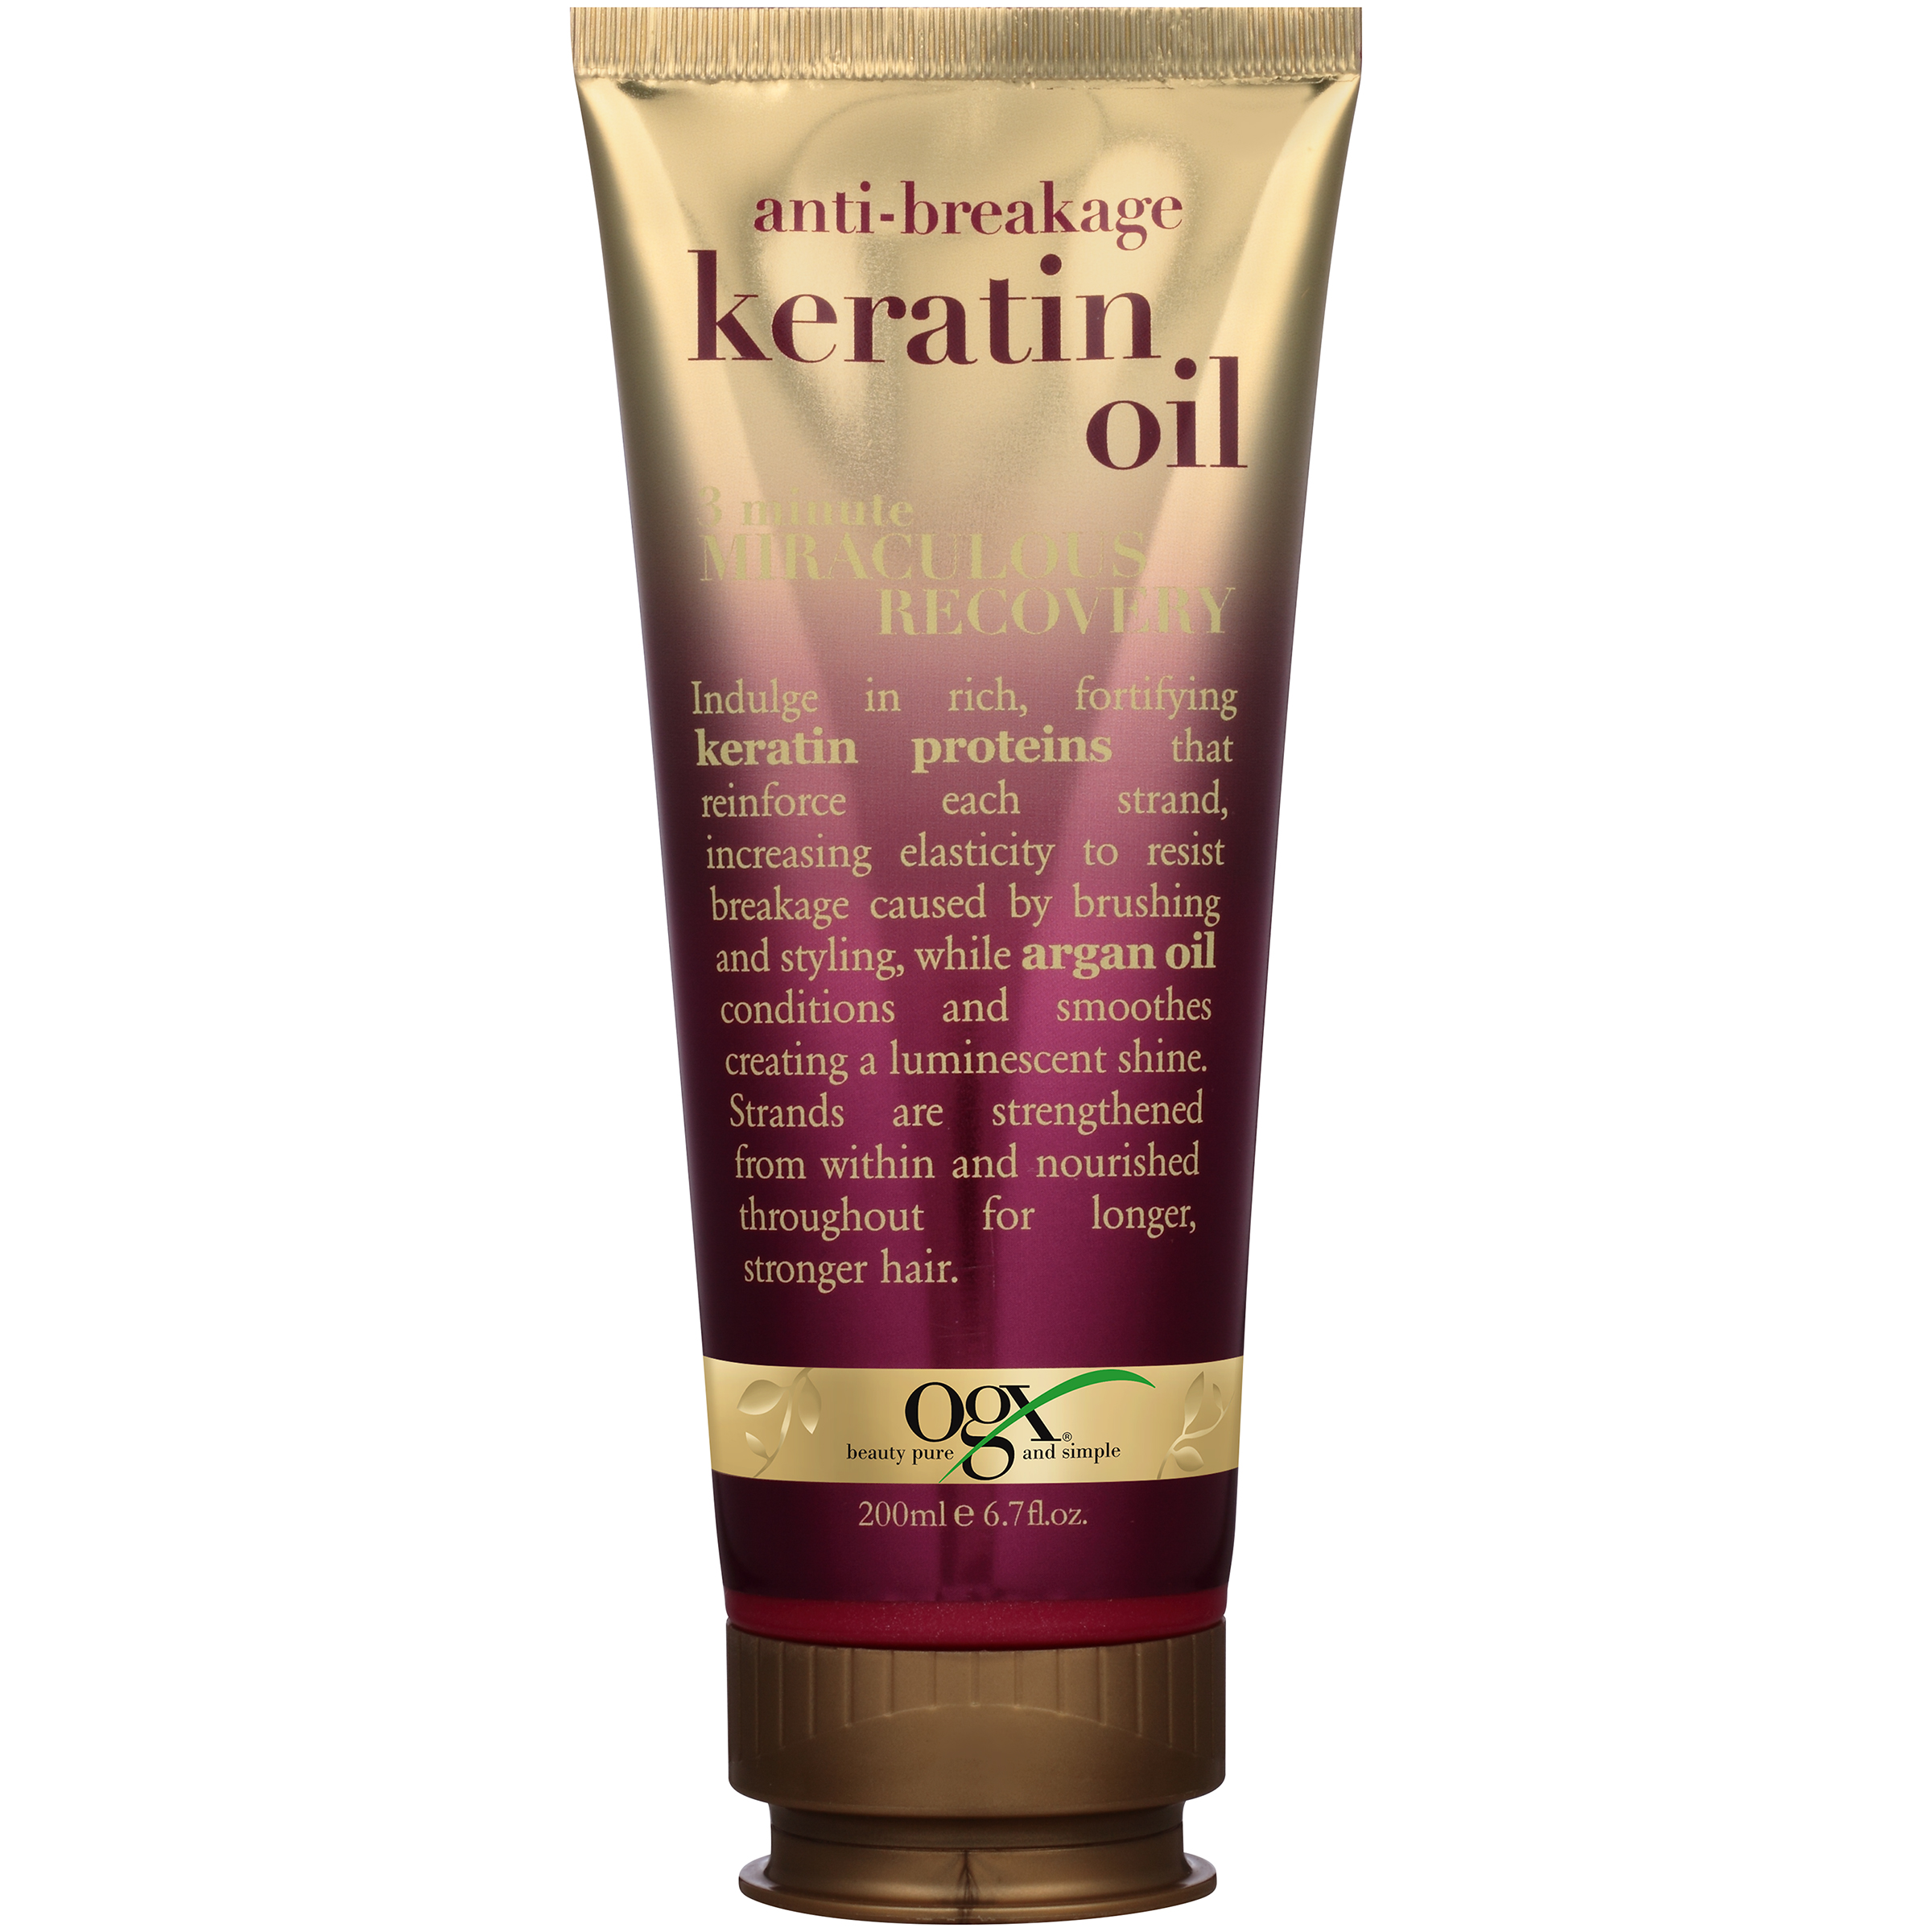 OGX® Anti-Breakage Keratin Oil 3 Minute Miraculous Recovery 6.7 fl. oz. Tube